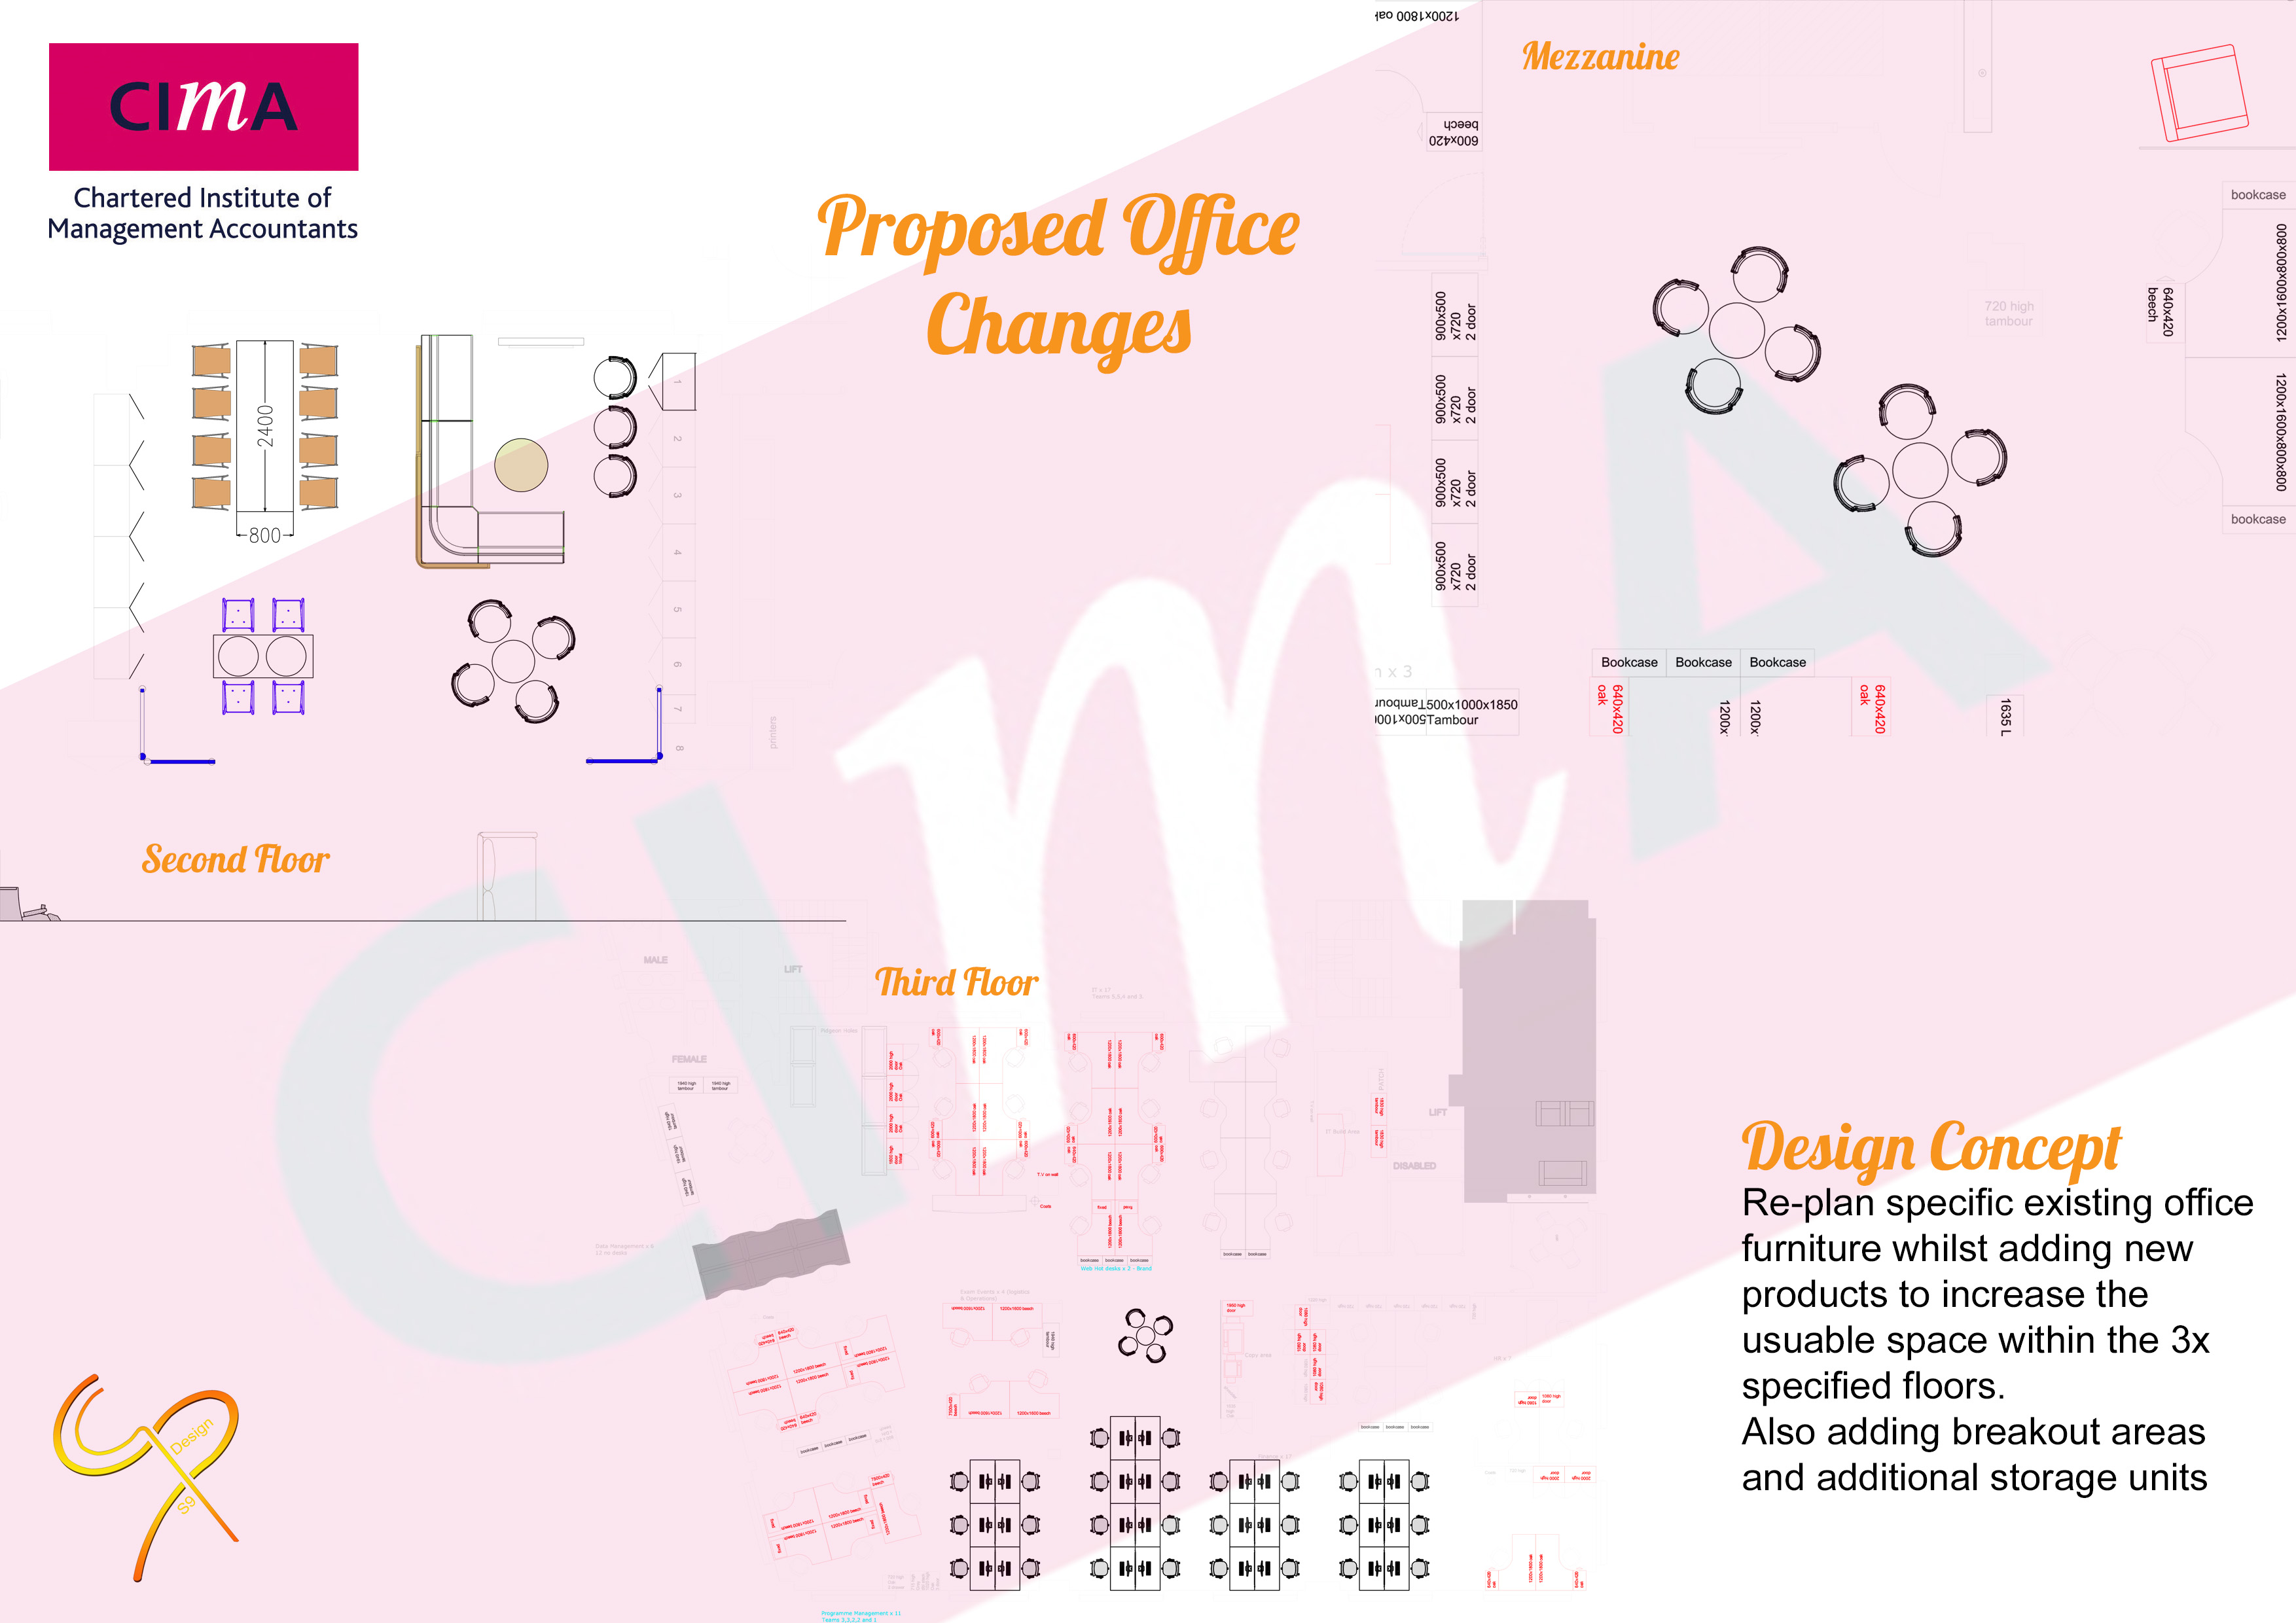 CIMA - Proposed Office Changes